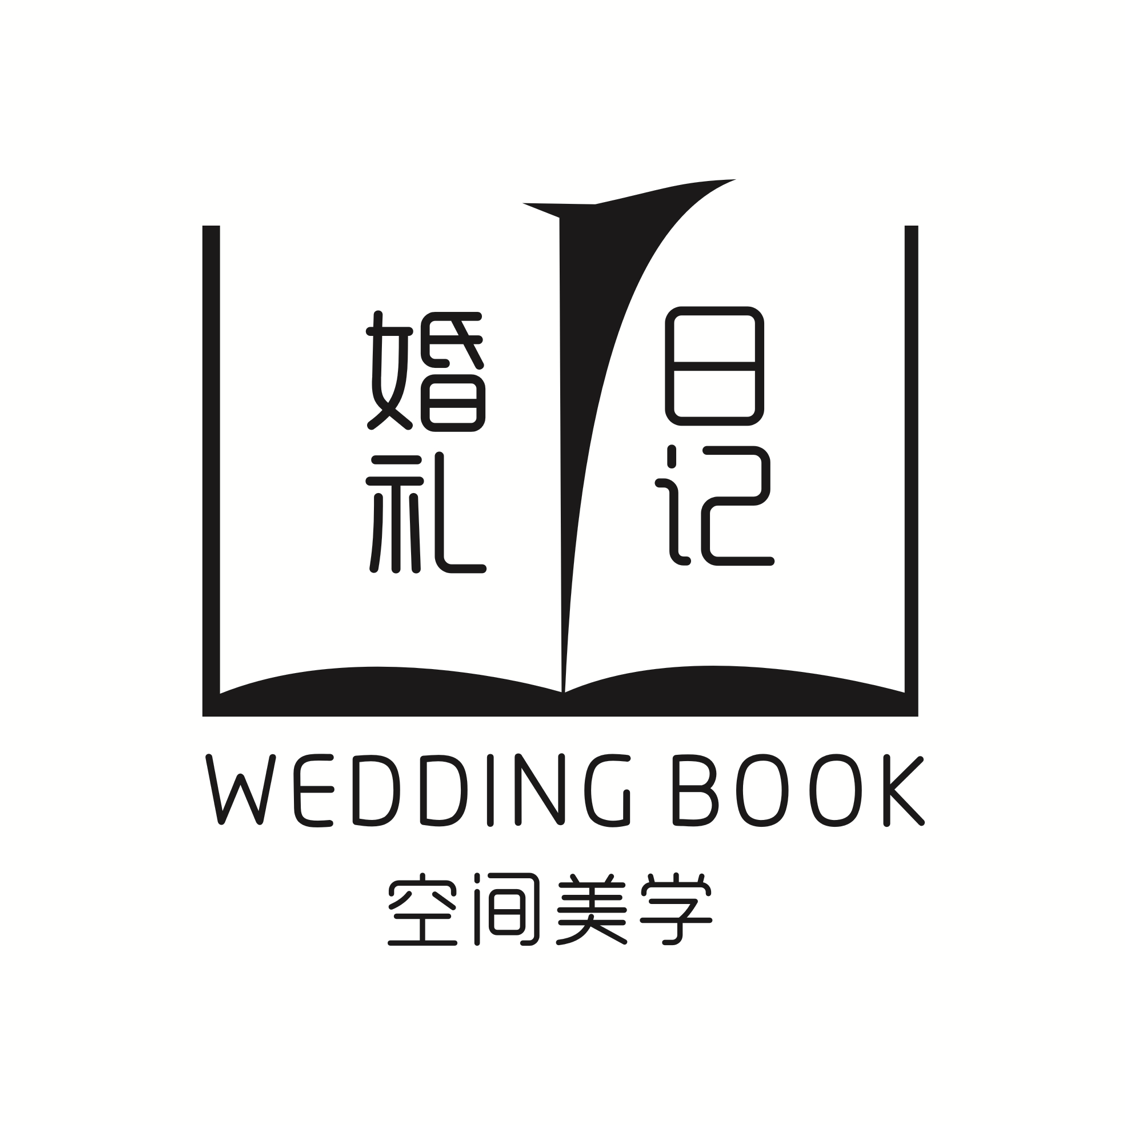 WEDDING BOOK婚礼日记